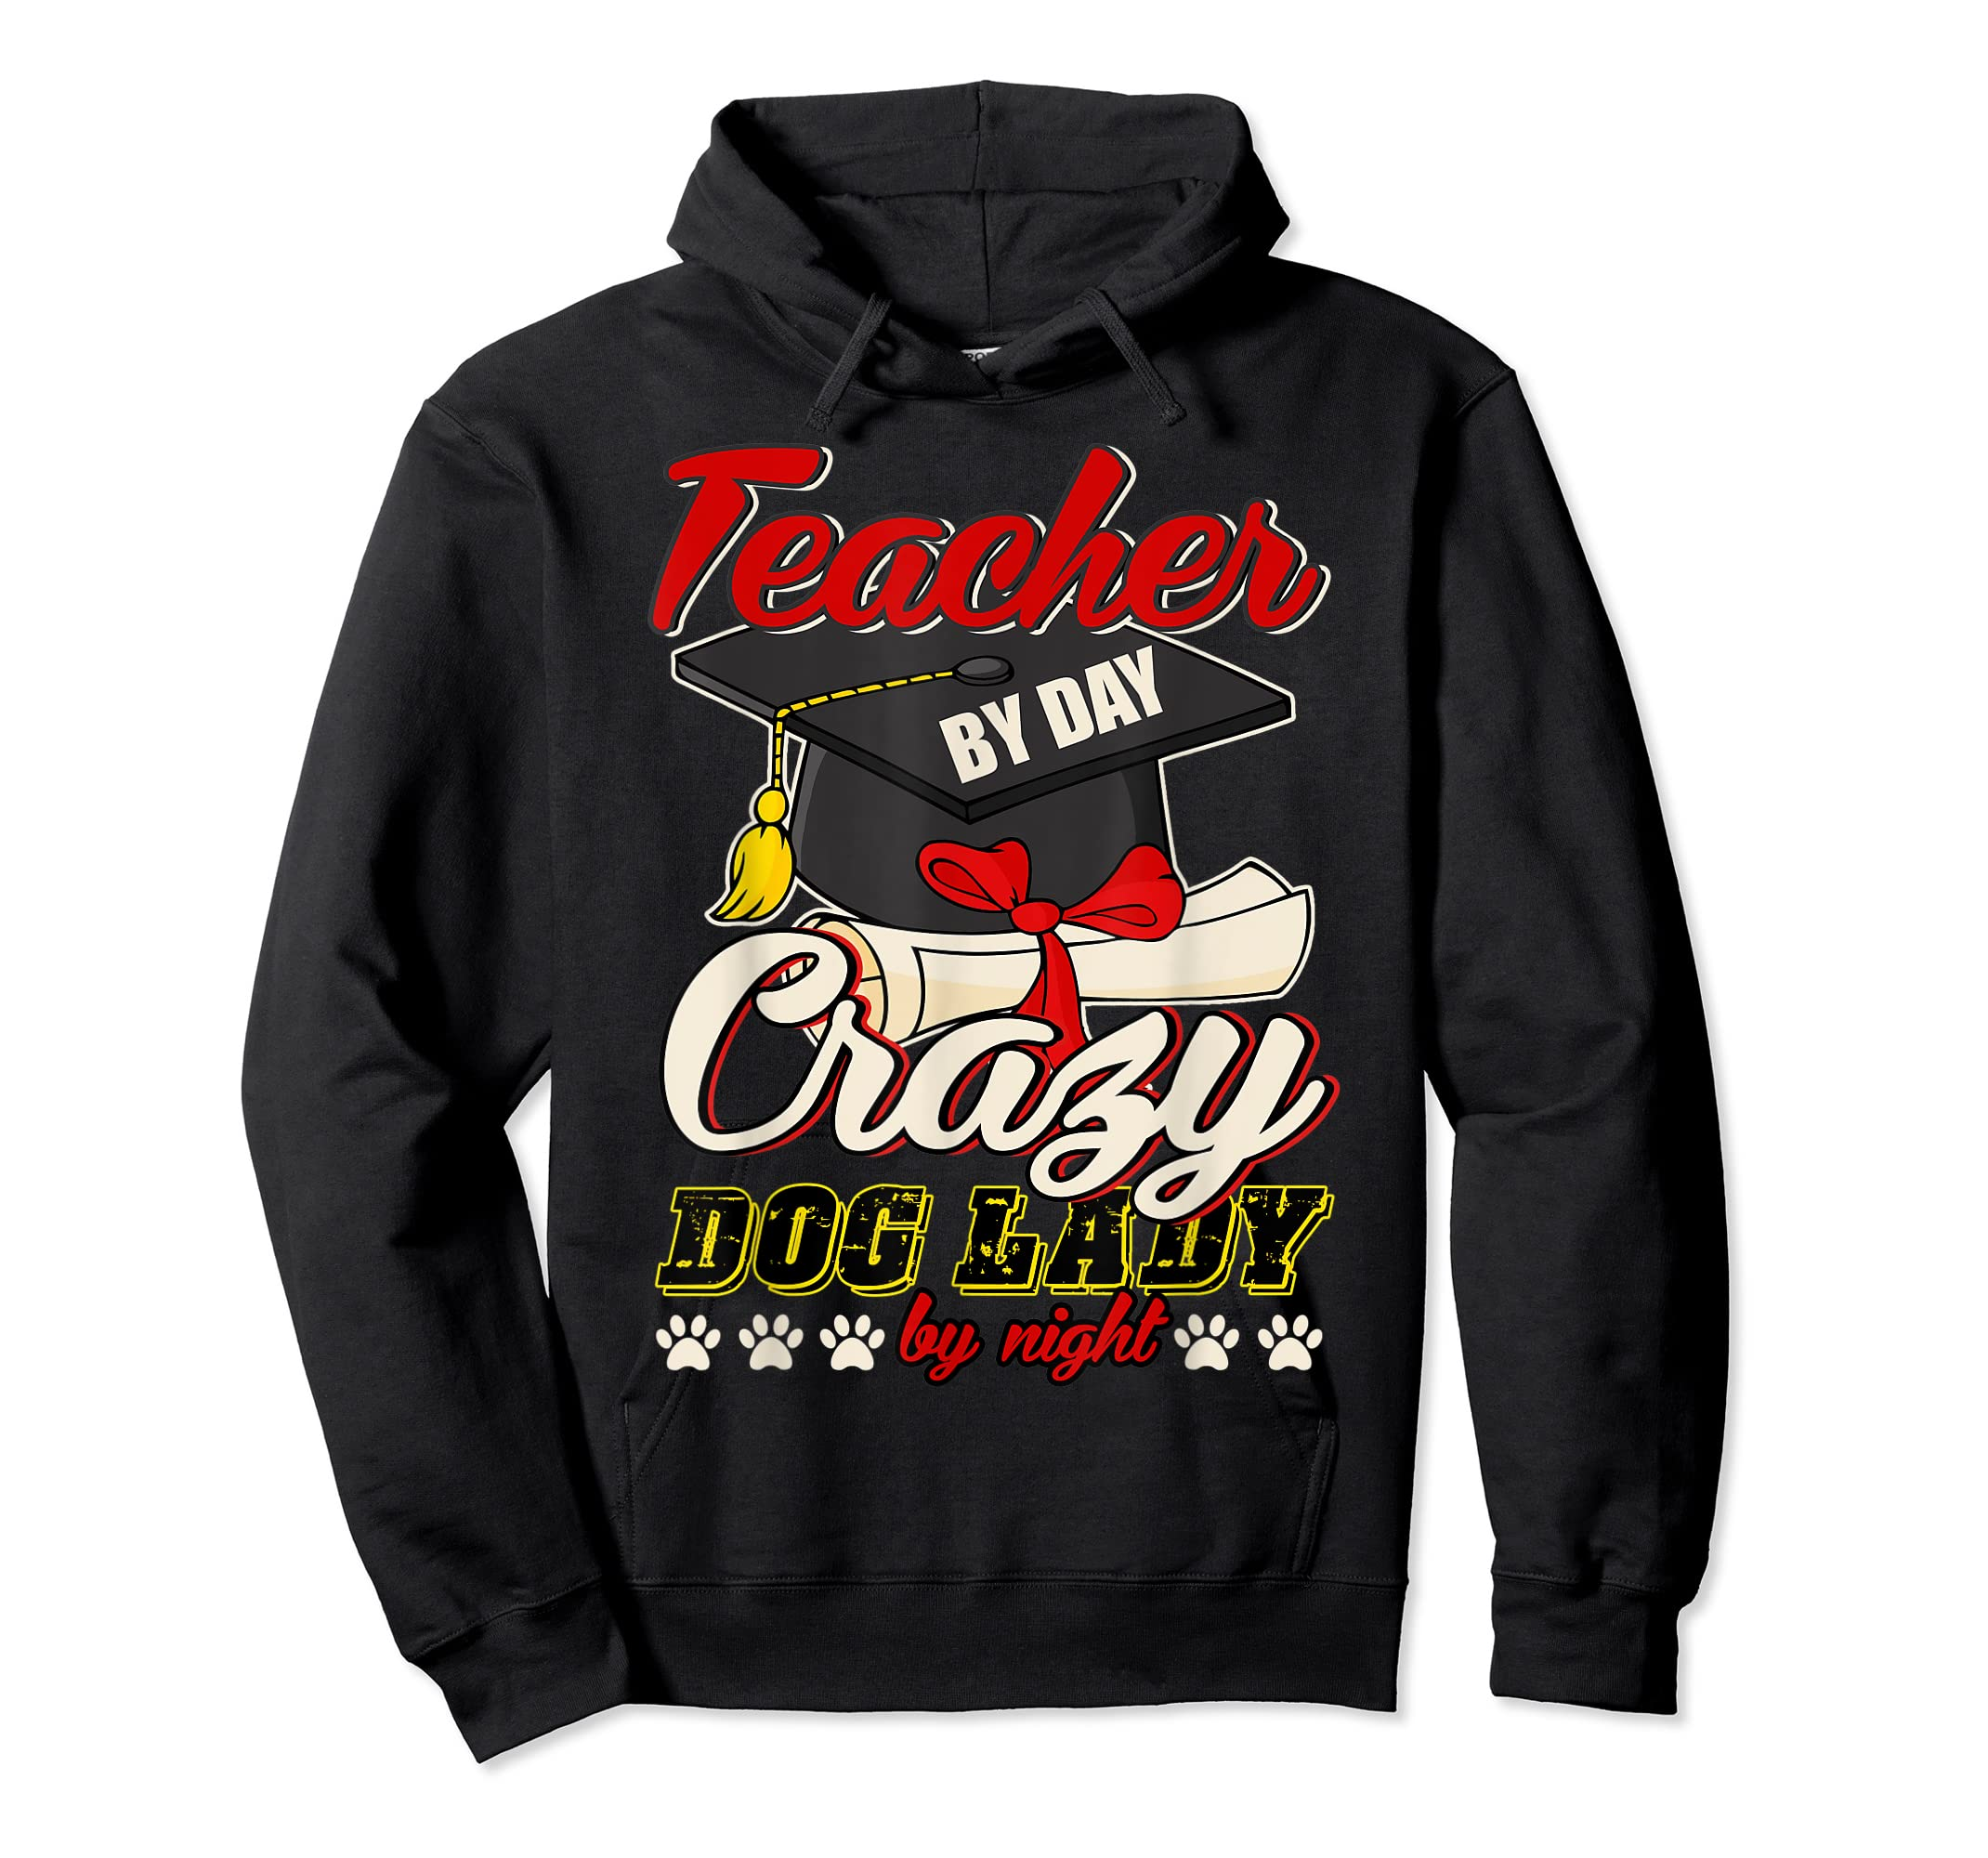 Teacher By Day T Shirt, Crazy Dog Lady By Night T Shirt-Hoodie-Black